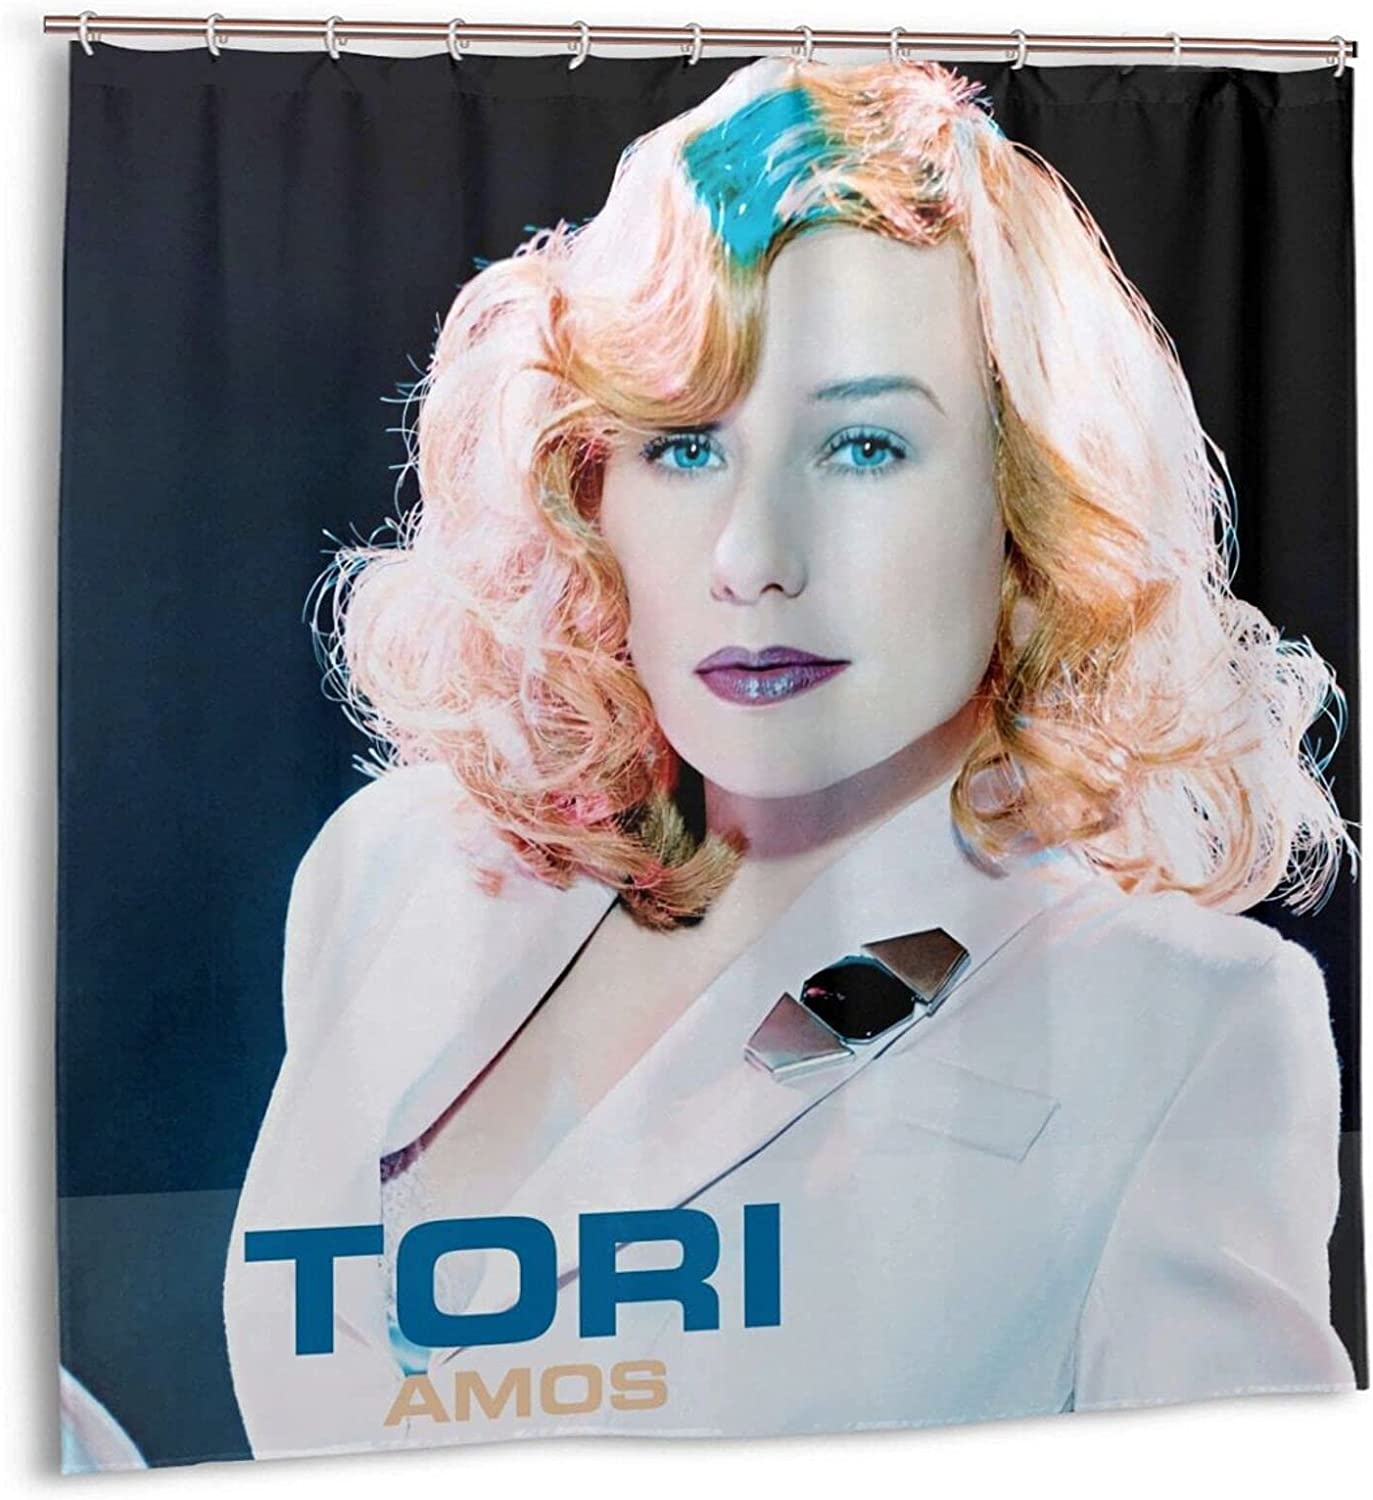 Credence Tori Amos Shower Curtain Heavy 70% OFF Outlet Duty with Curtains Fabric